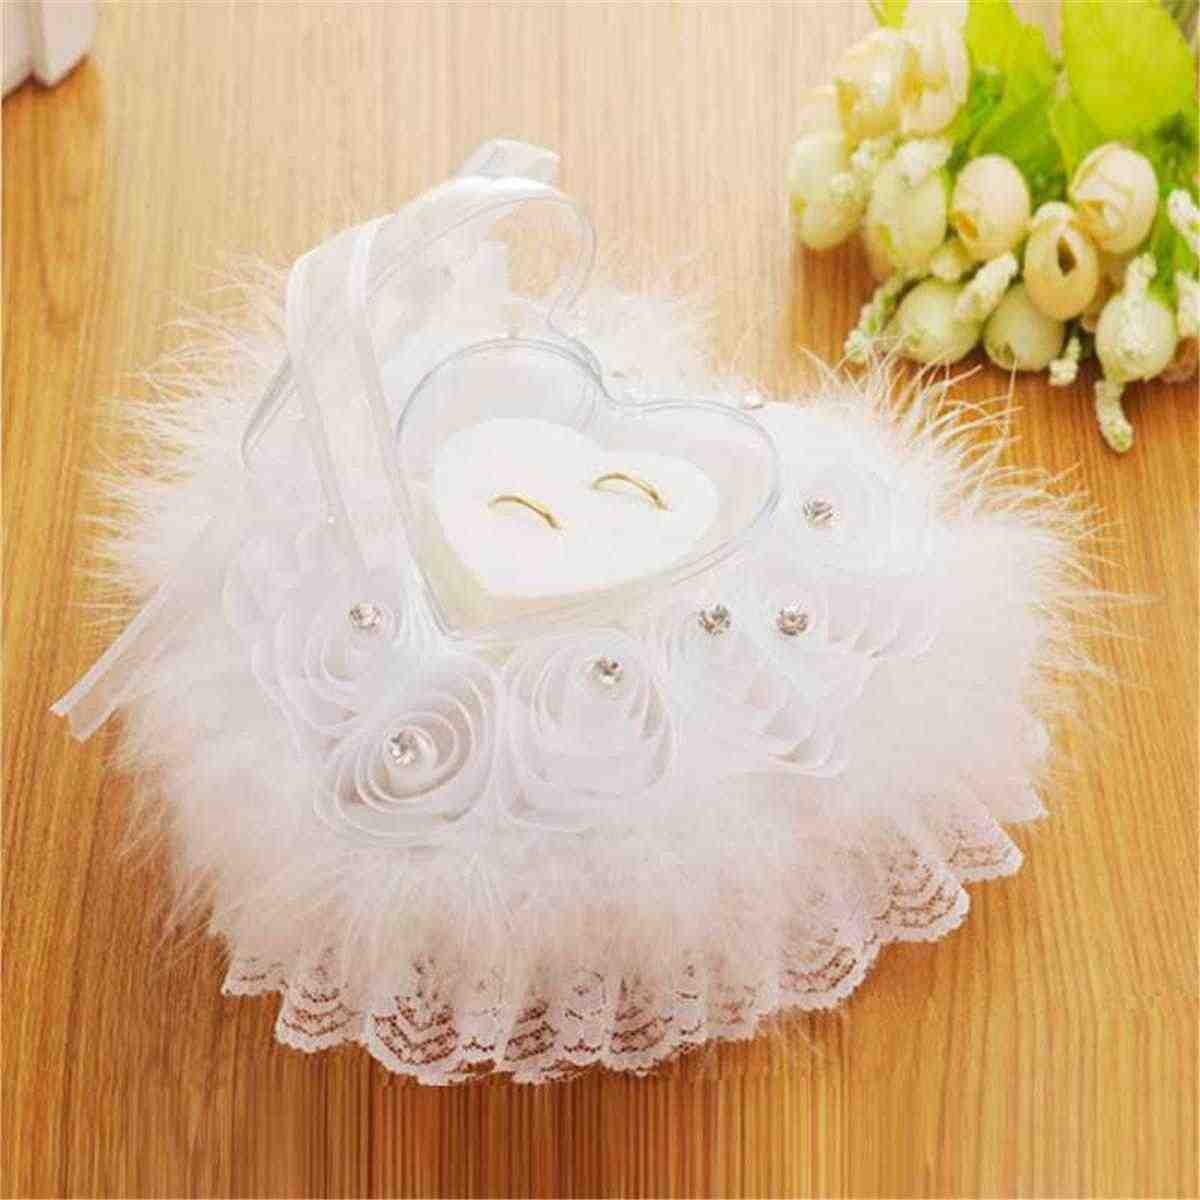 White Ring Pillow Heart Shaped Party Wedding Decoration Valentine's Day Gift Ring Box Rhinestone Diamond Cushion Holder Gifts